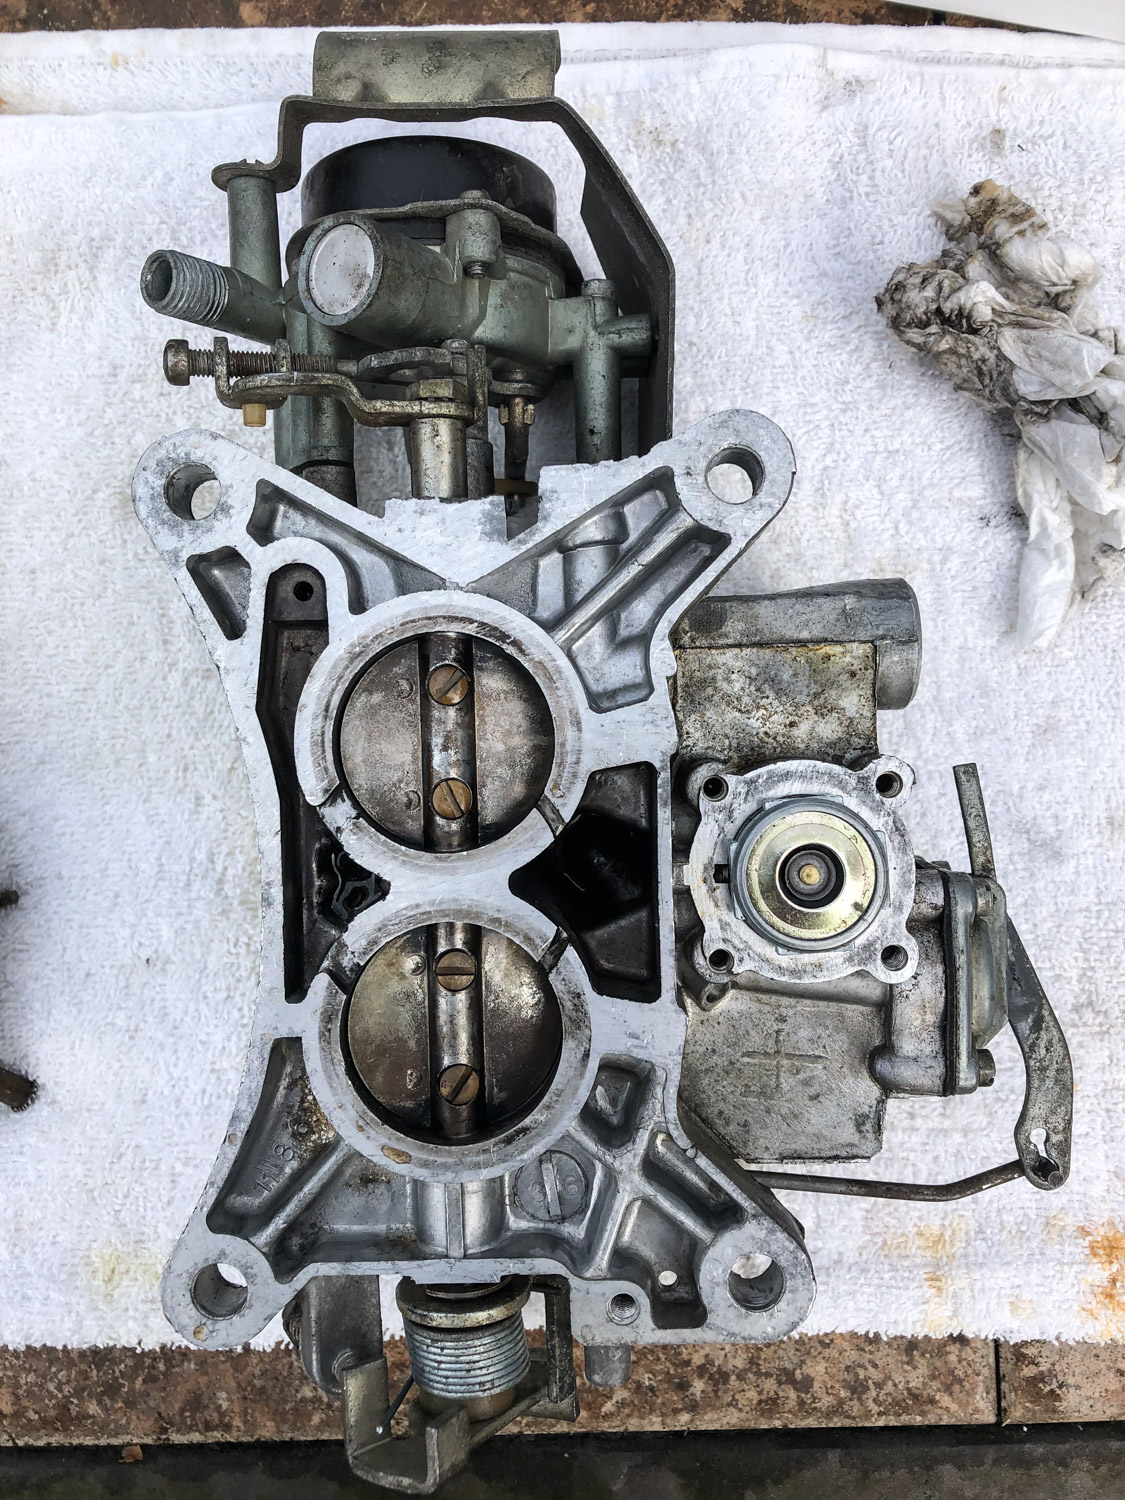 Sunbeam Tiger carburetor undersid